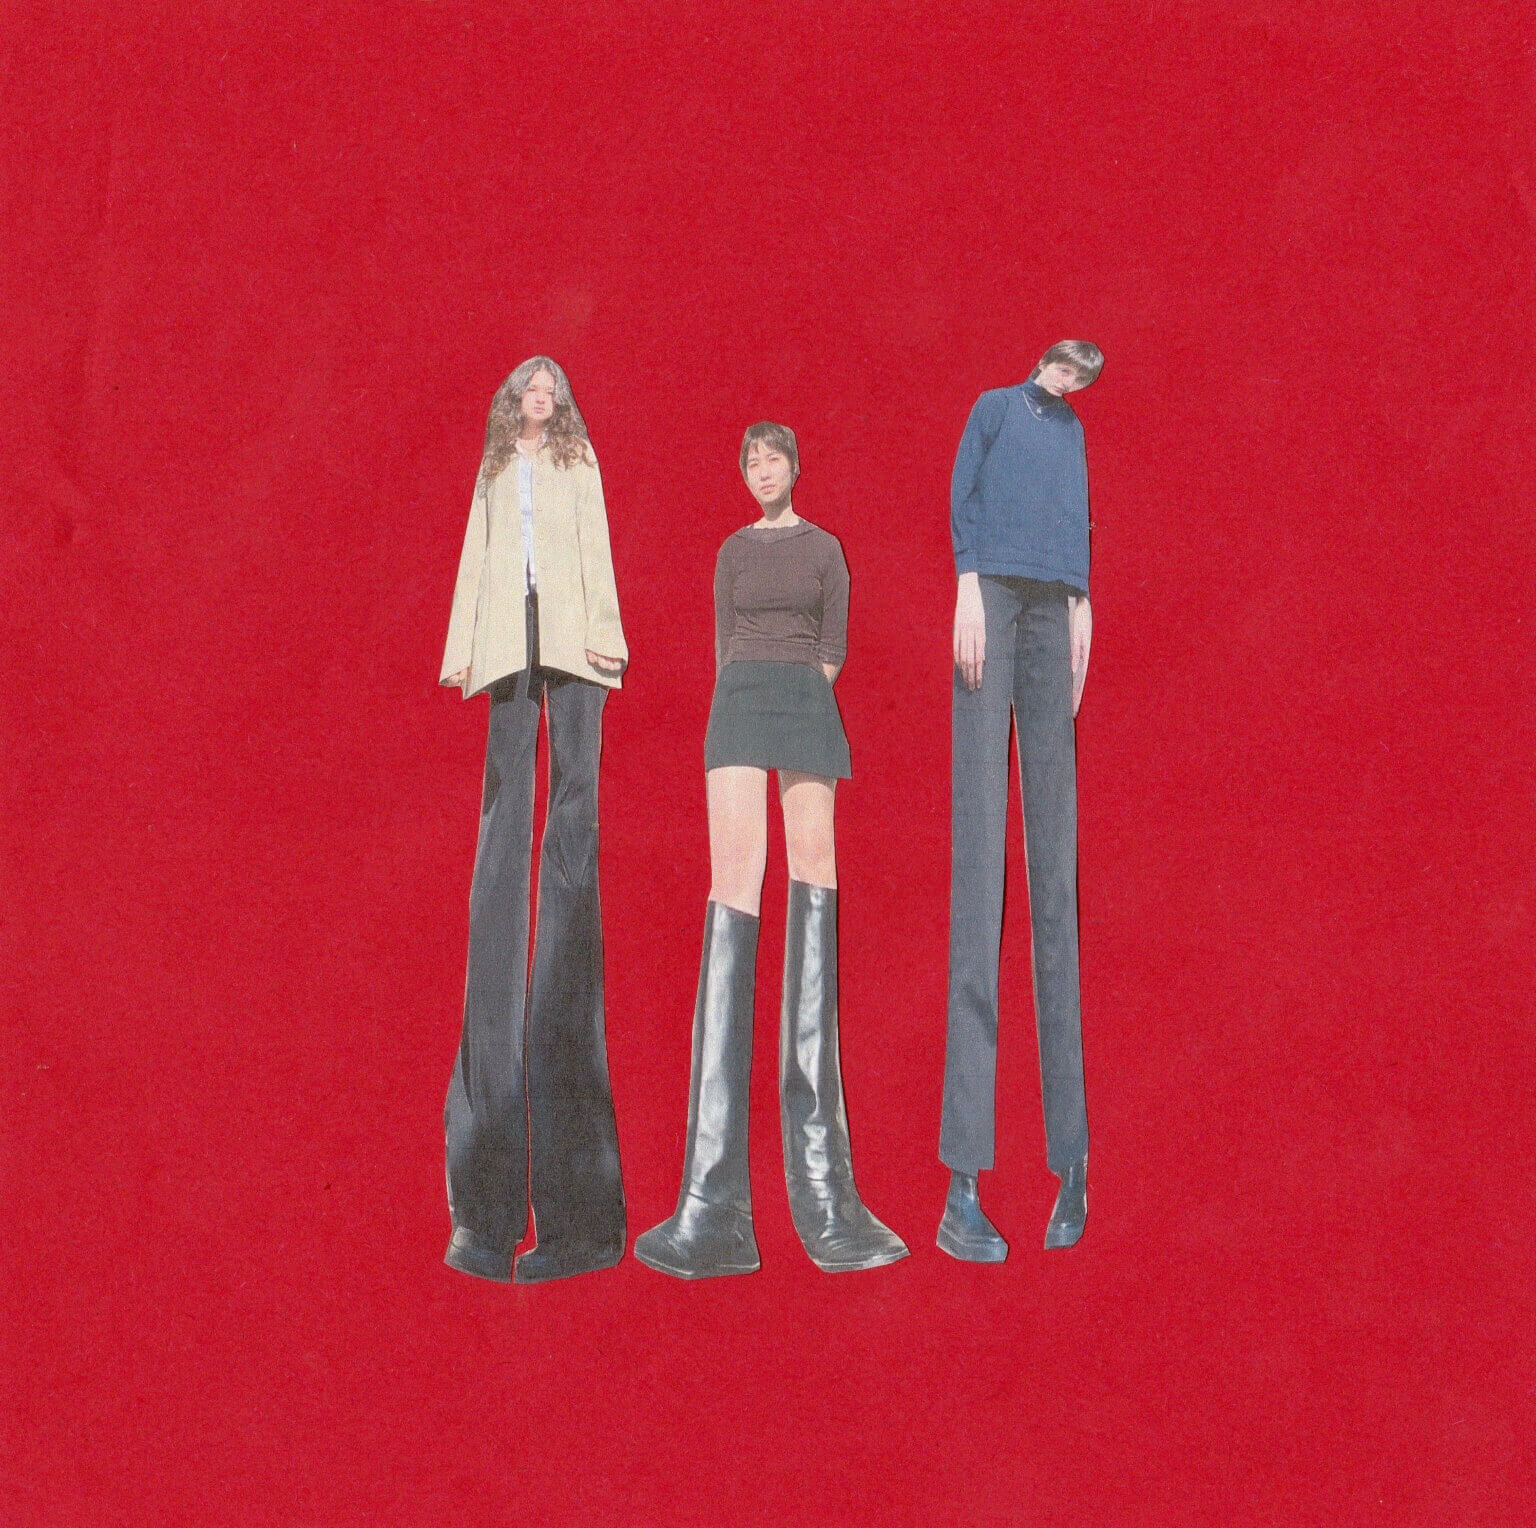 Horsegirl, is comprised of teenagers Penelope Lowenstein, Nora Cheng , and Gigi Reece. The band, recently announced their first tour